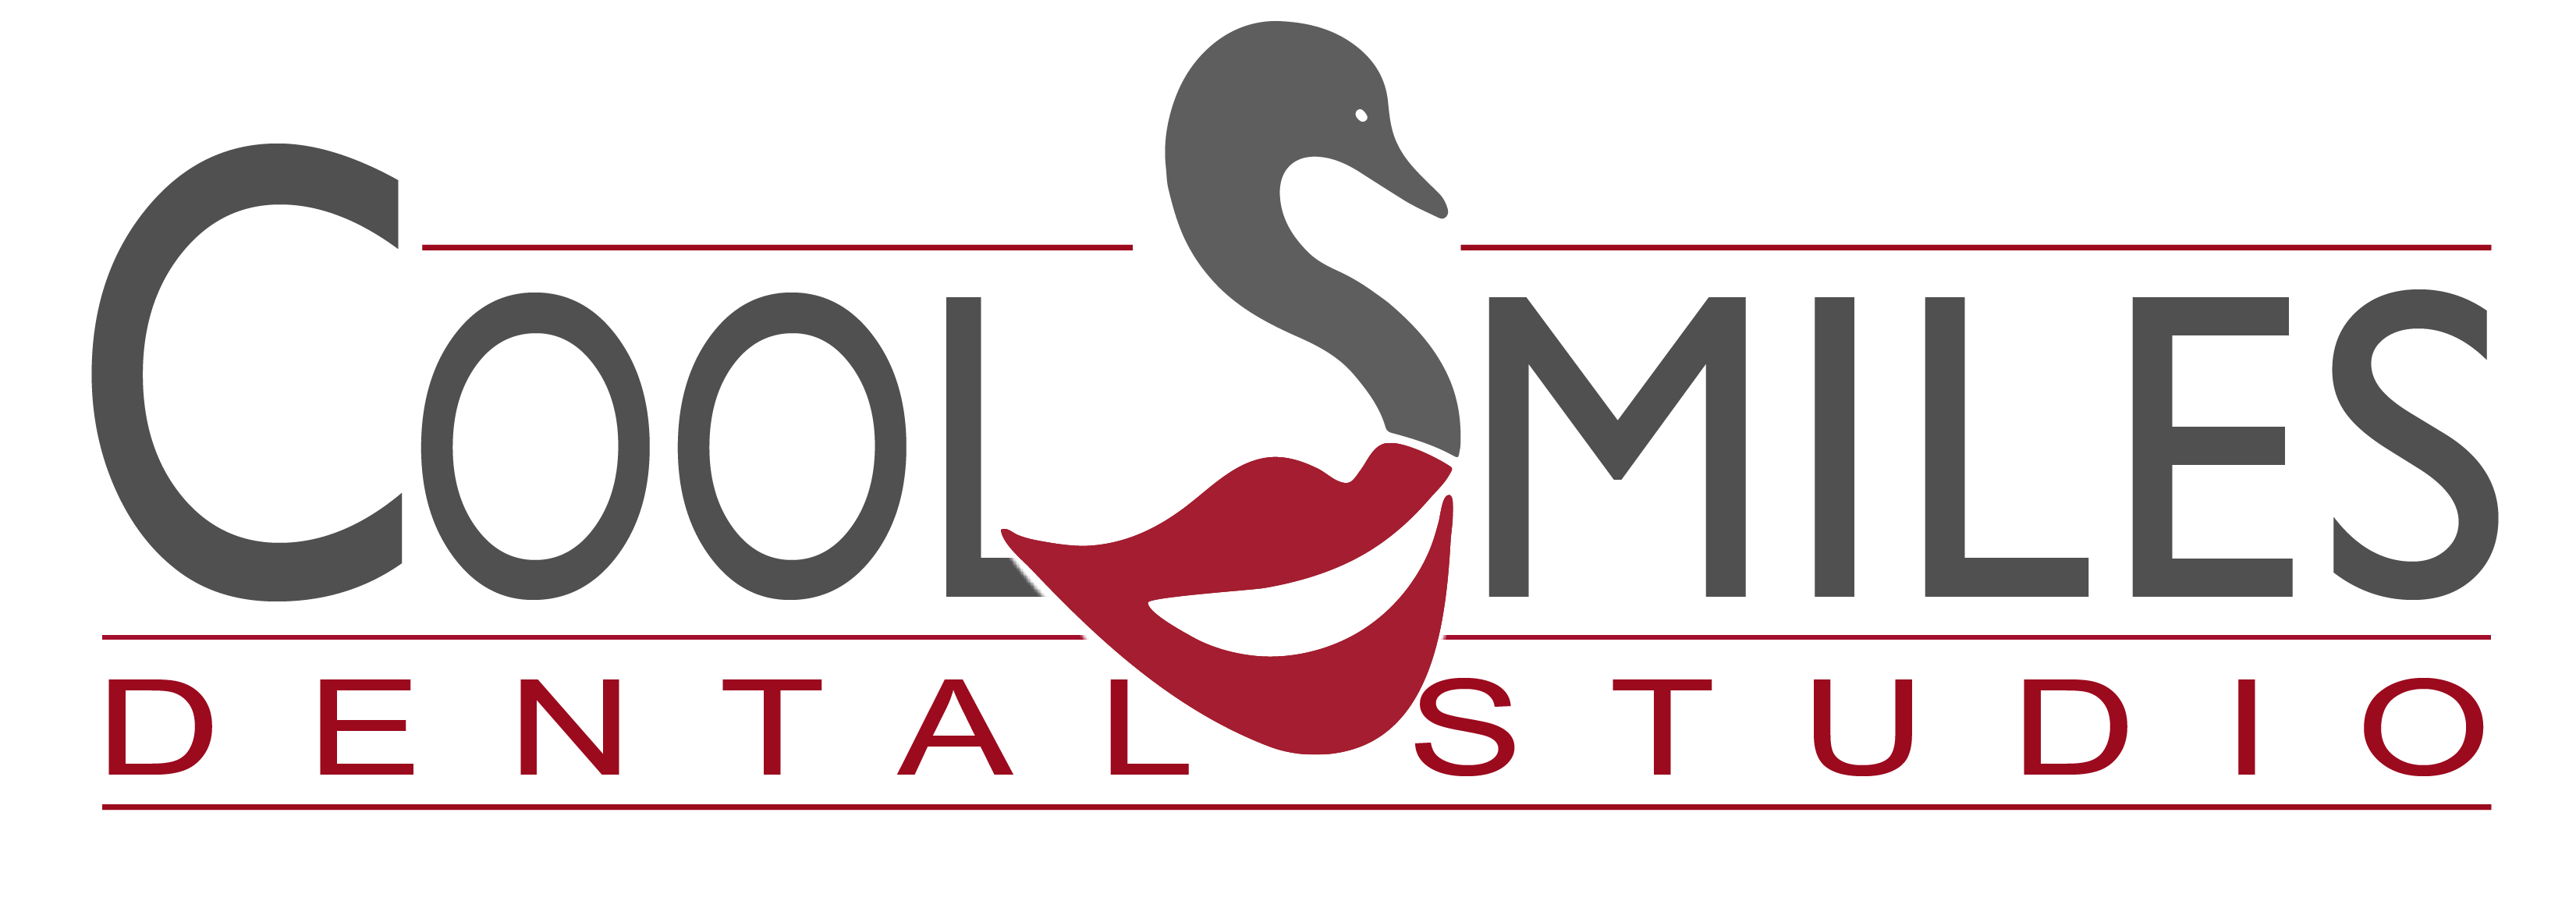 Cool Smiles Dental Studio Logo